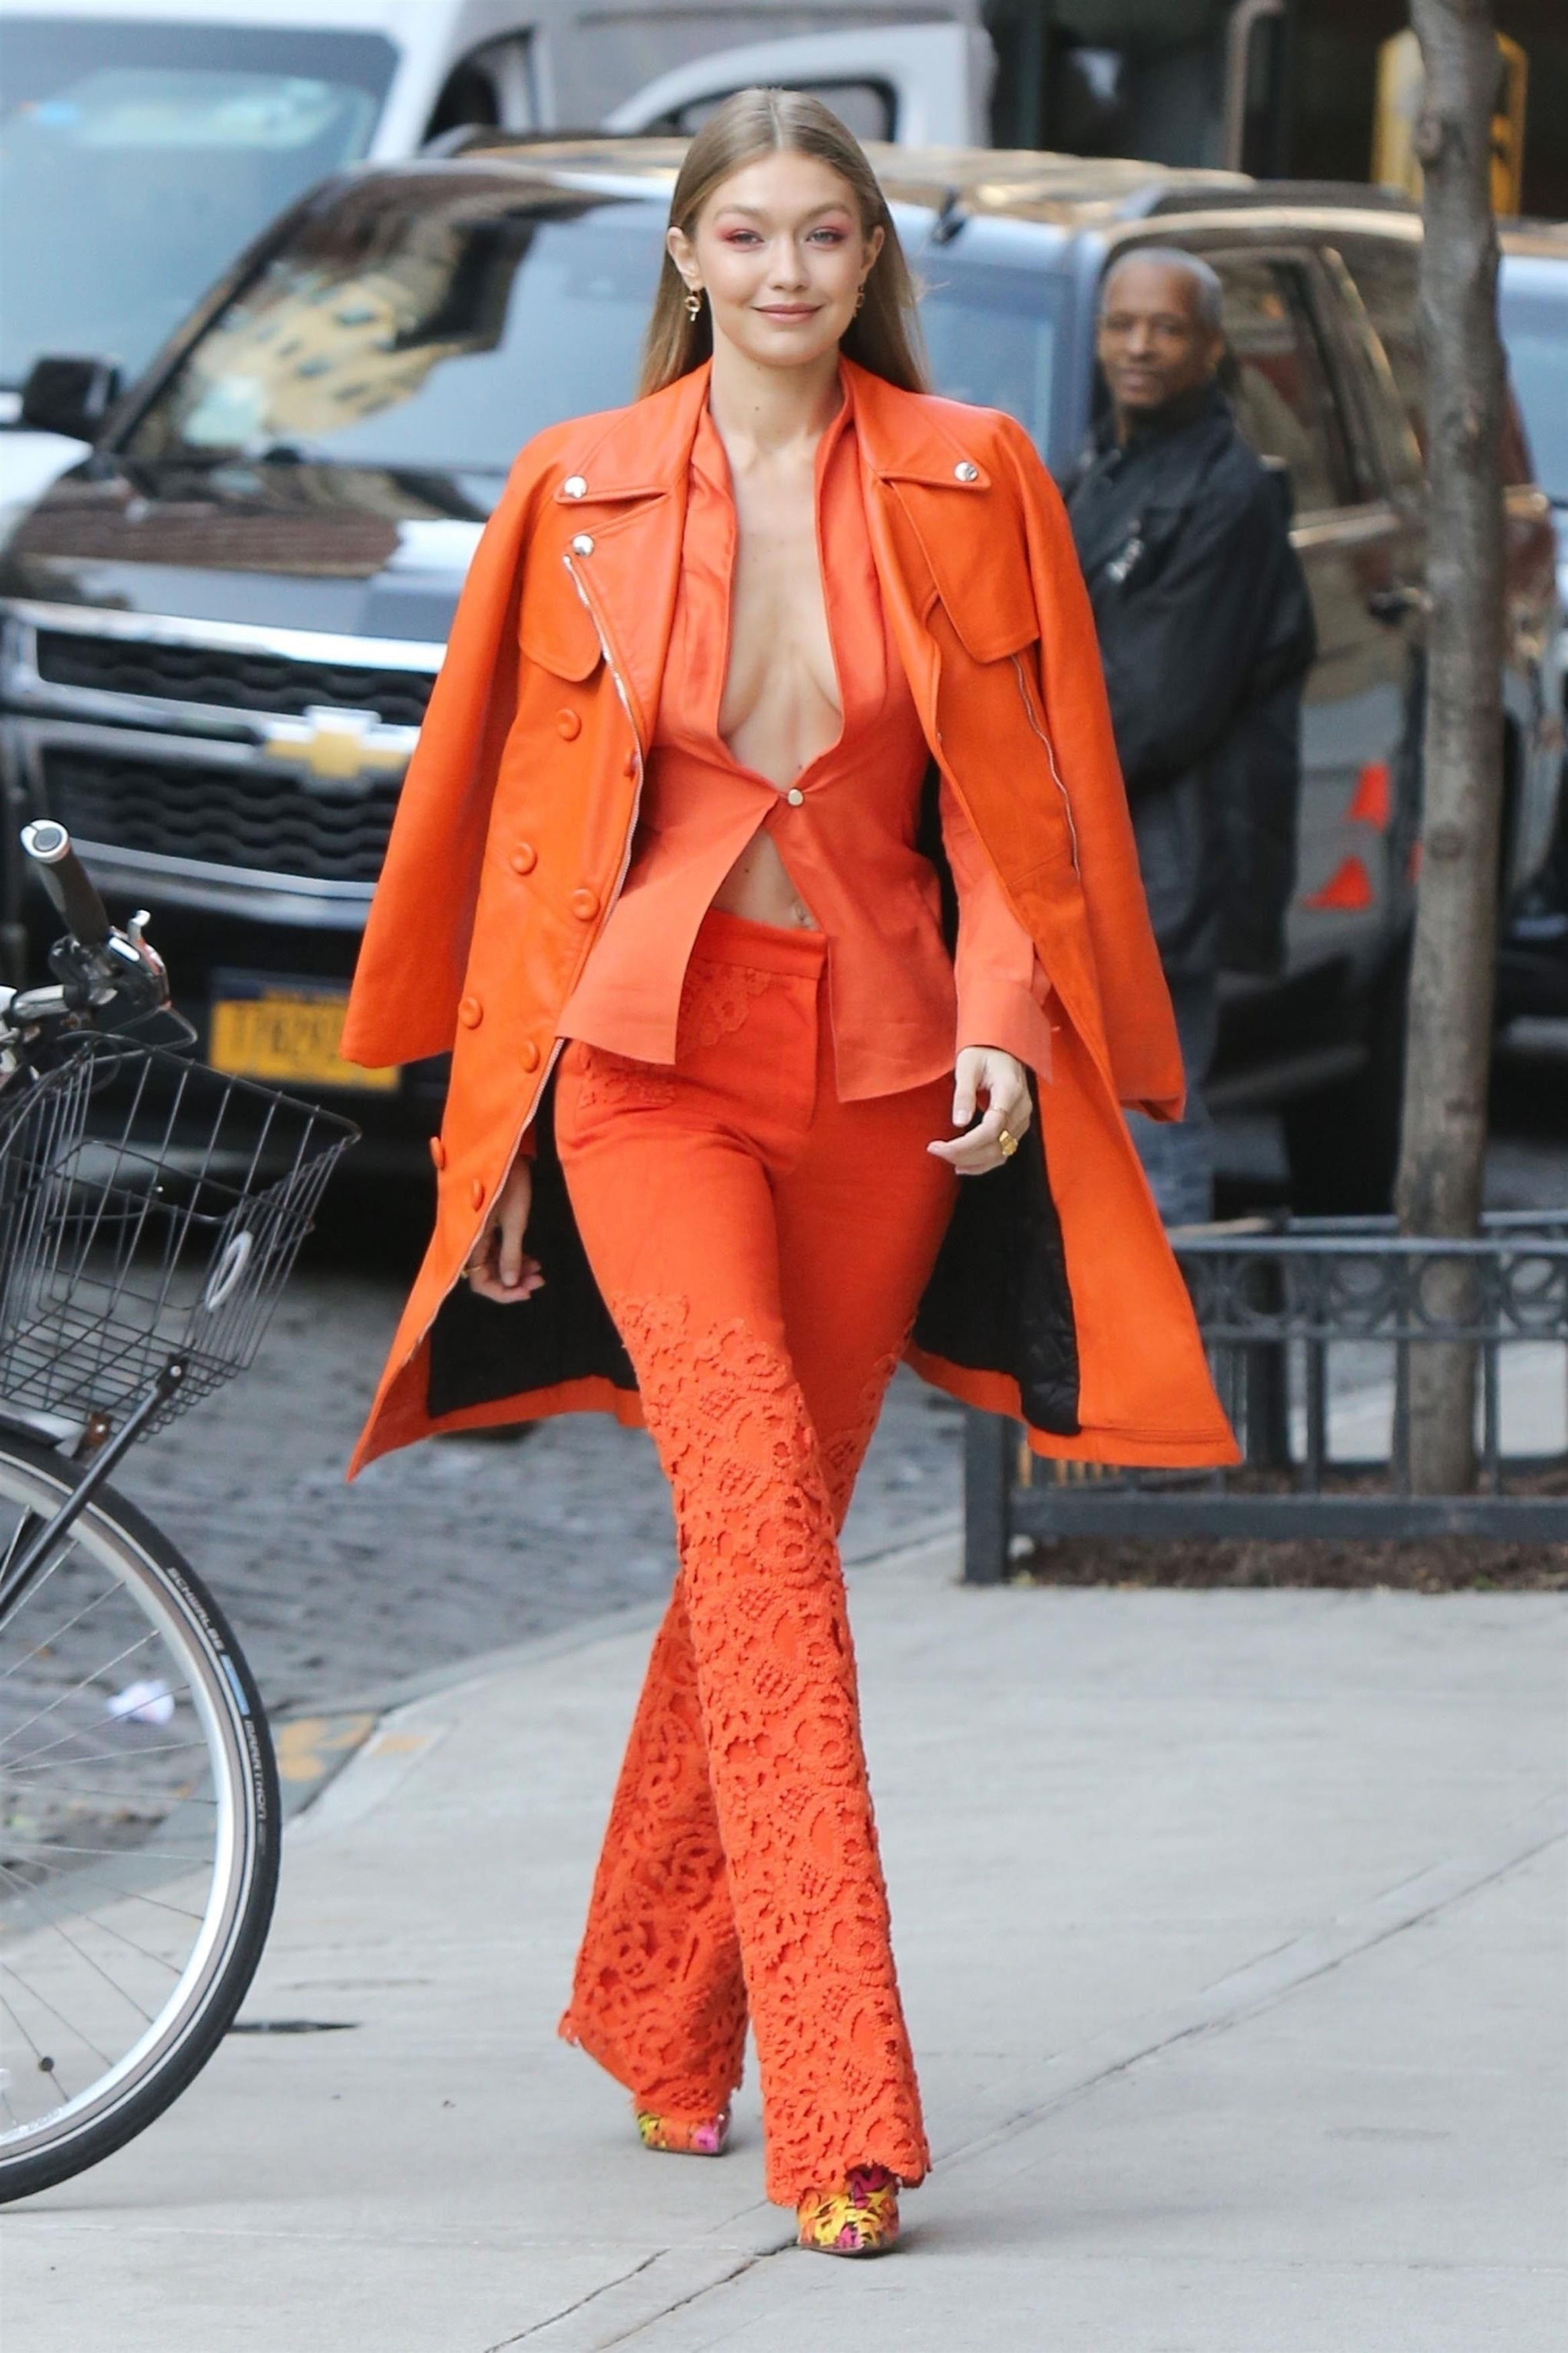 Gigi Hadid In Ronald van der Kemp & Moschino – Out In New York City – Street Style